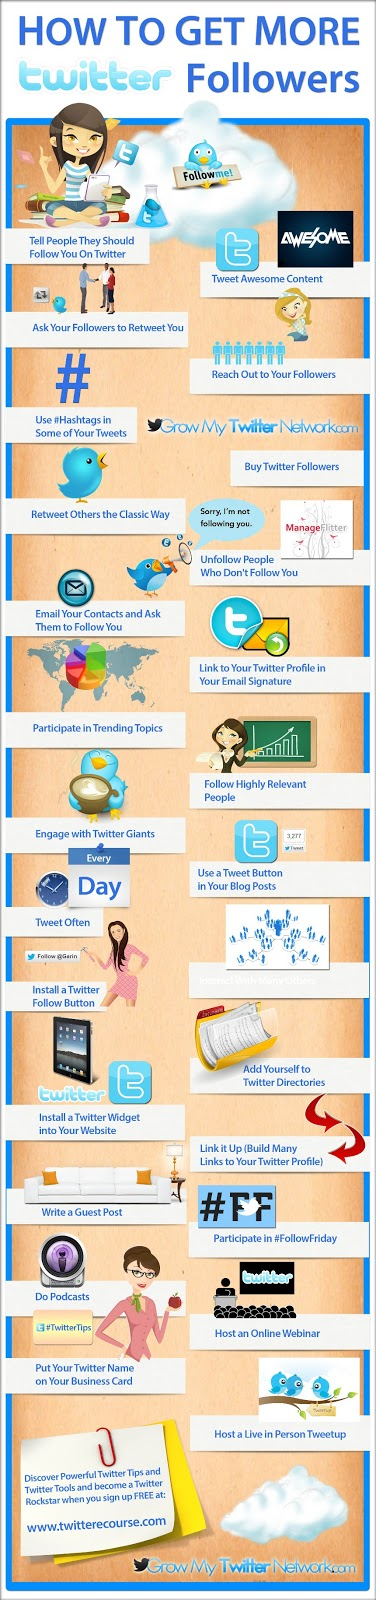 Infographic - How To Get More Twitter Followers